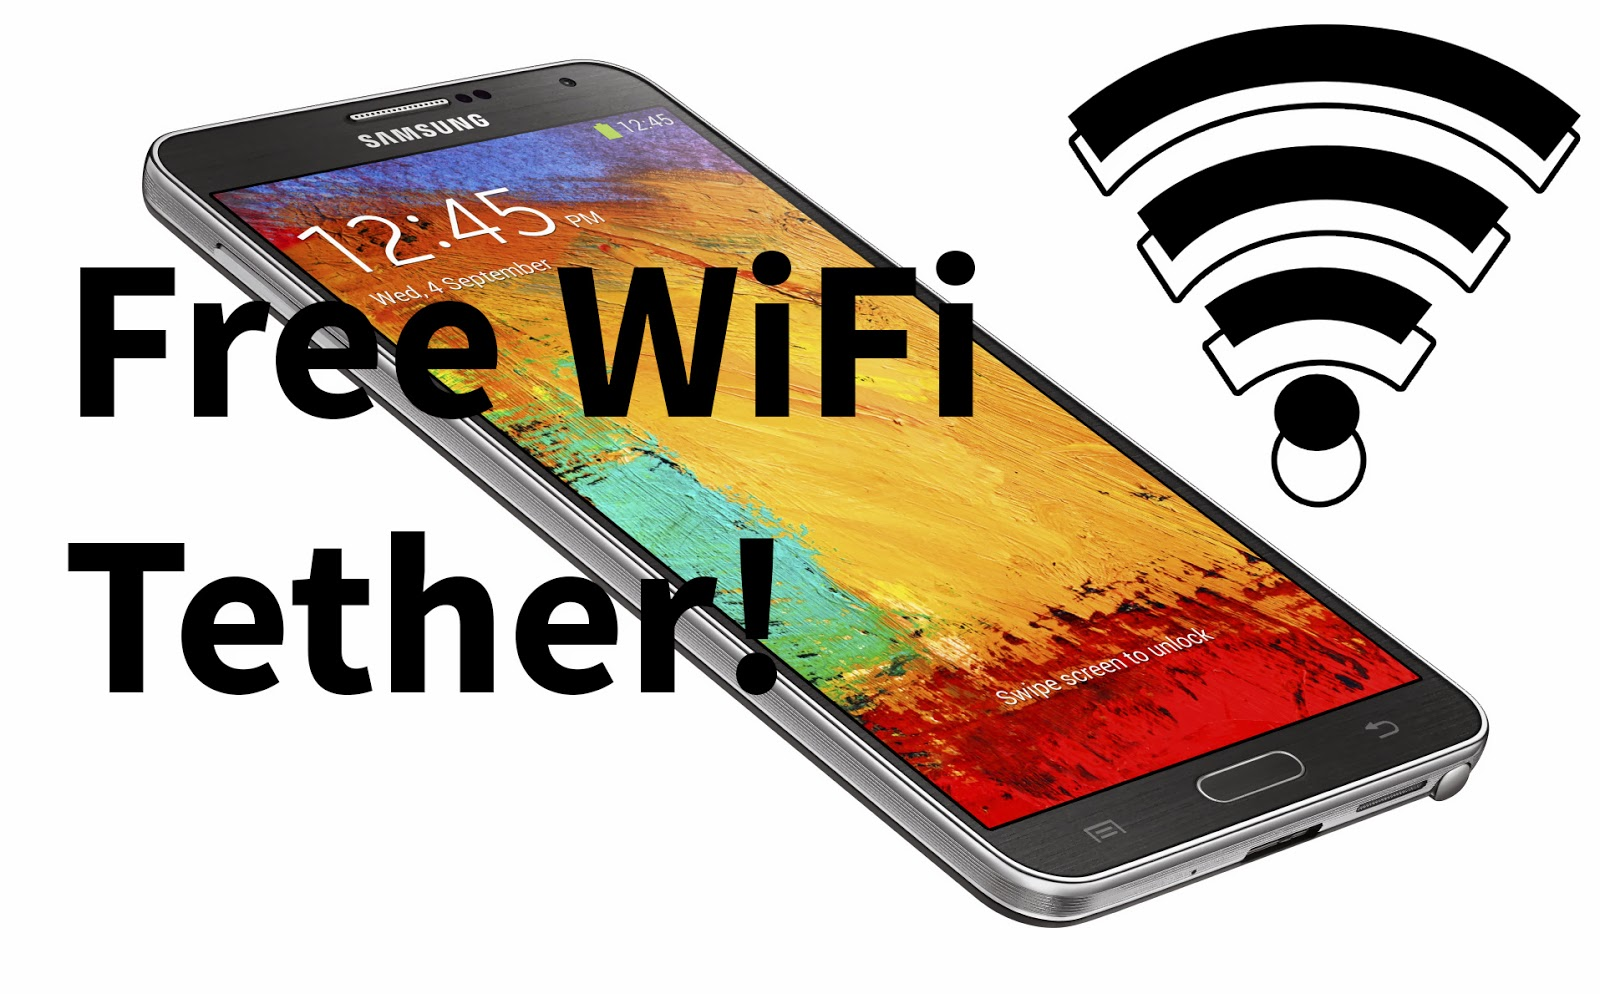 How to Get Free WiFi Tether for AT&T and Verizon Galaxy Note